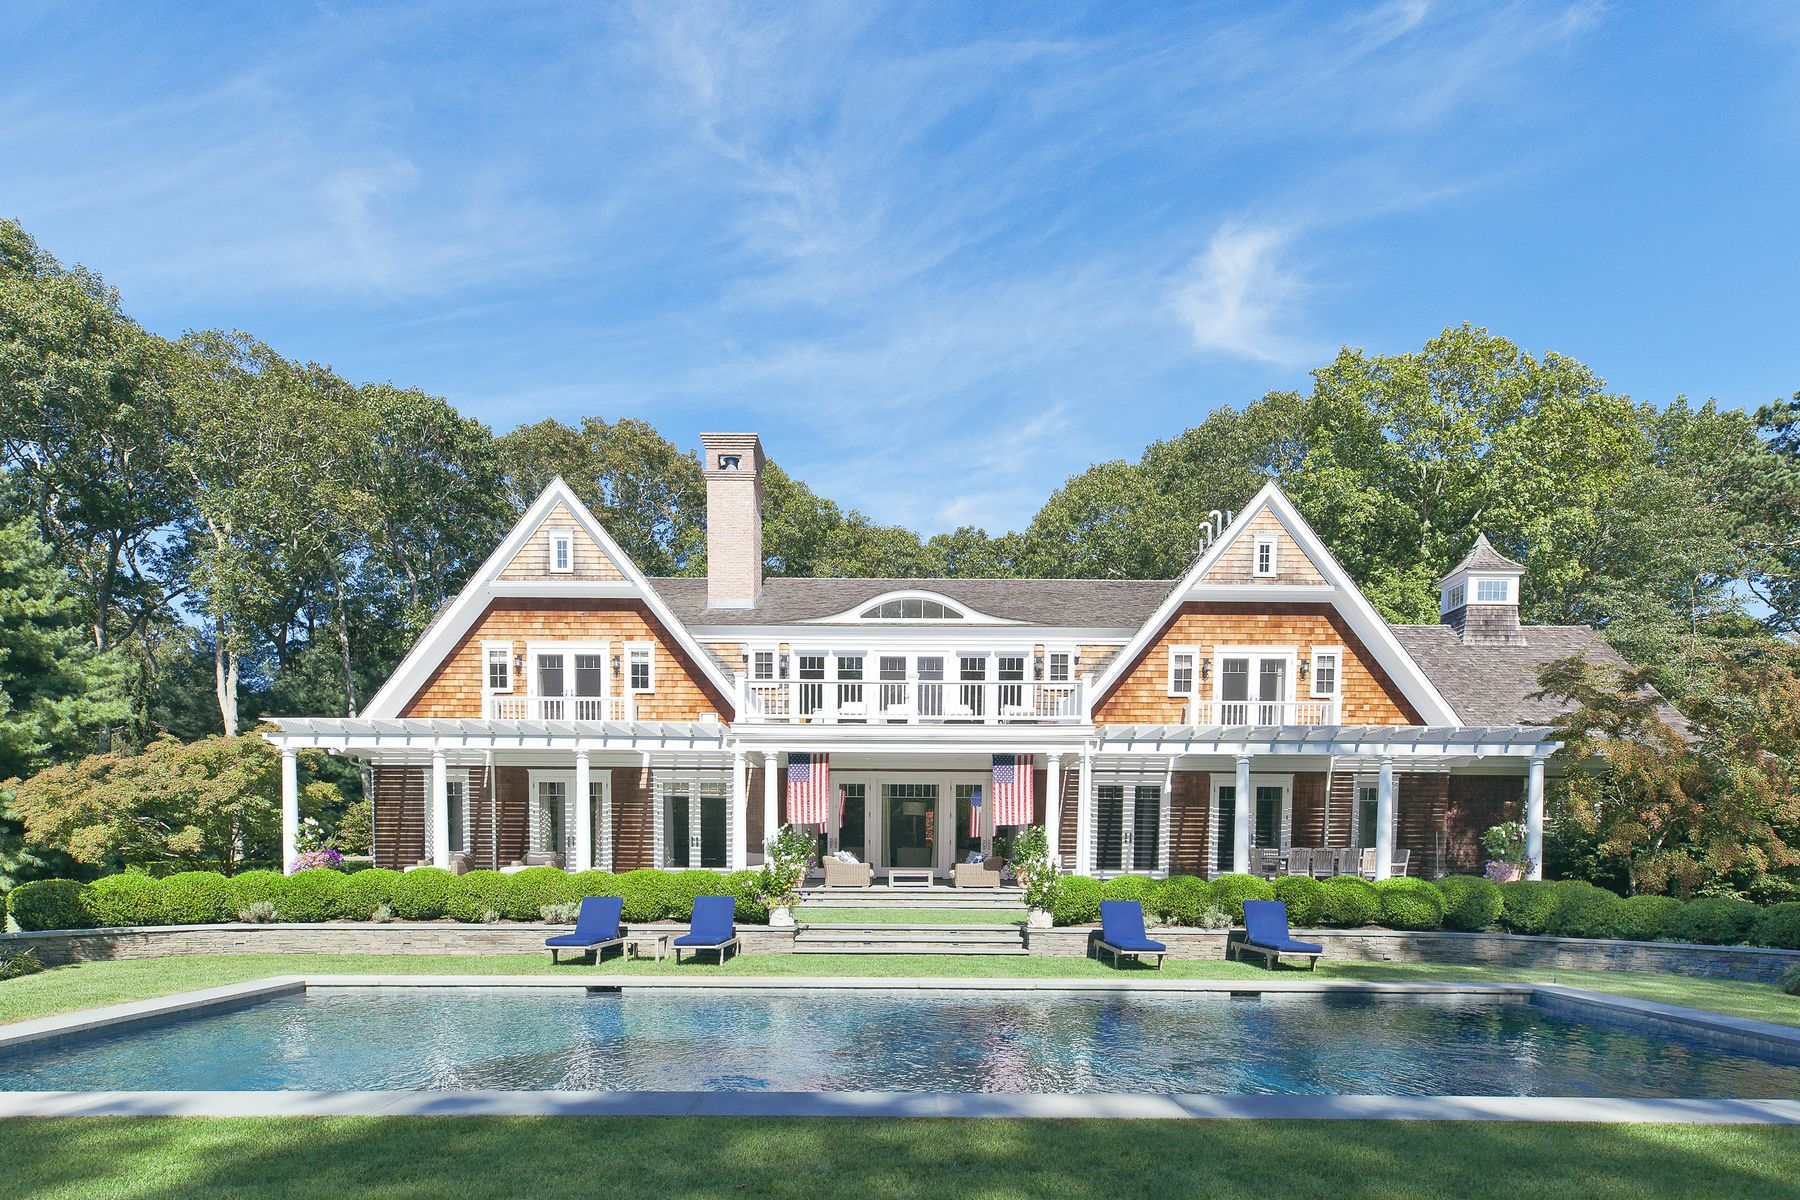 Vivienda unifamiliar En venta en 10 Jones Cove Road, East Hampton, NY ,11937  , EE.UU.